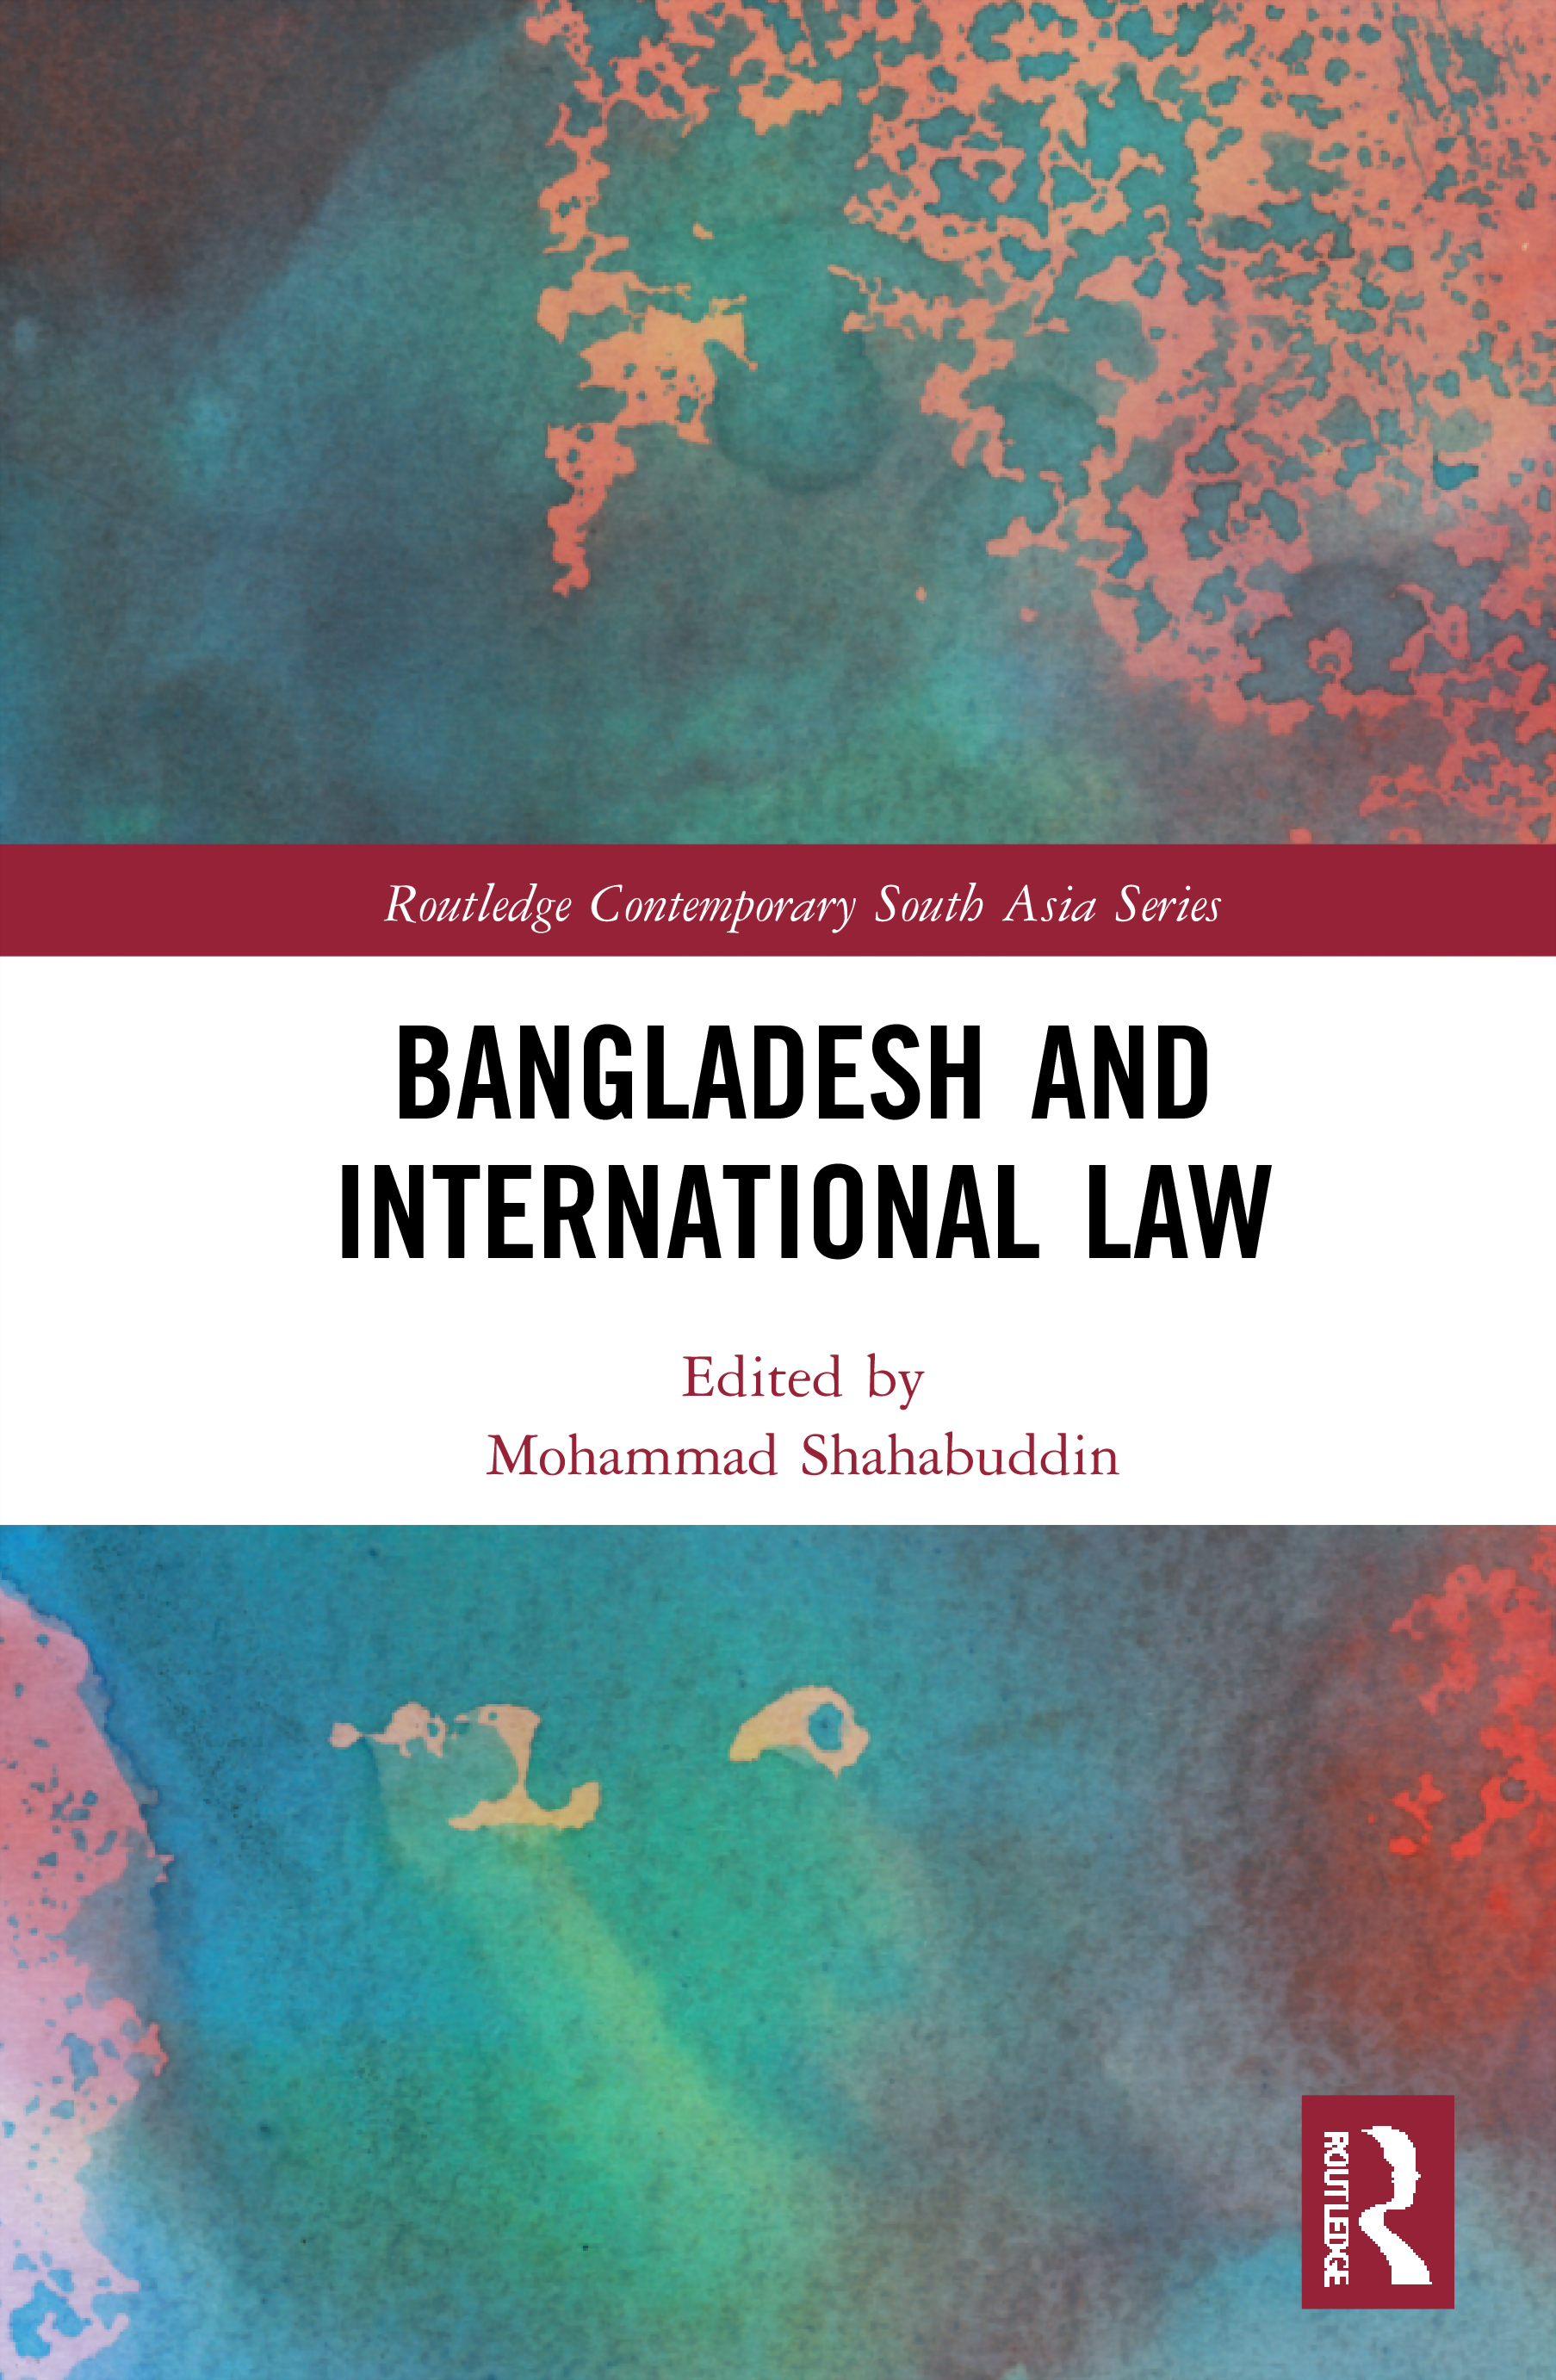 Framework of engagement with international law